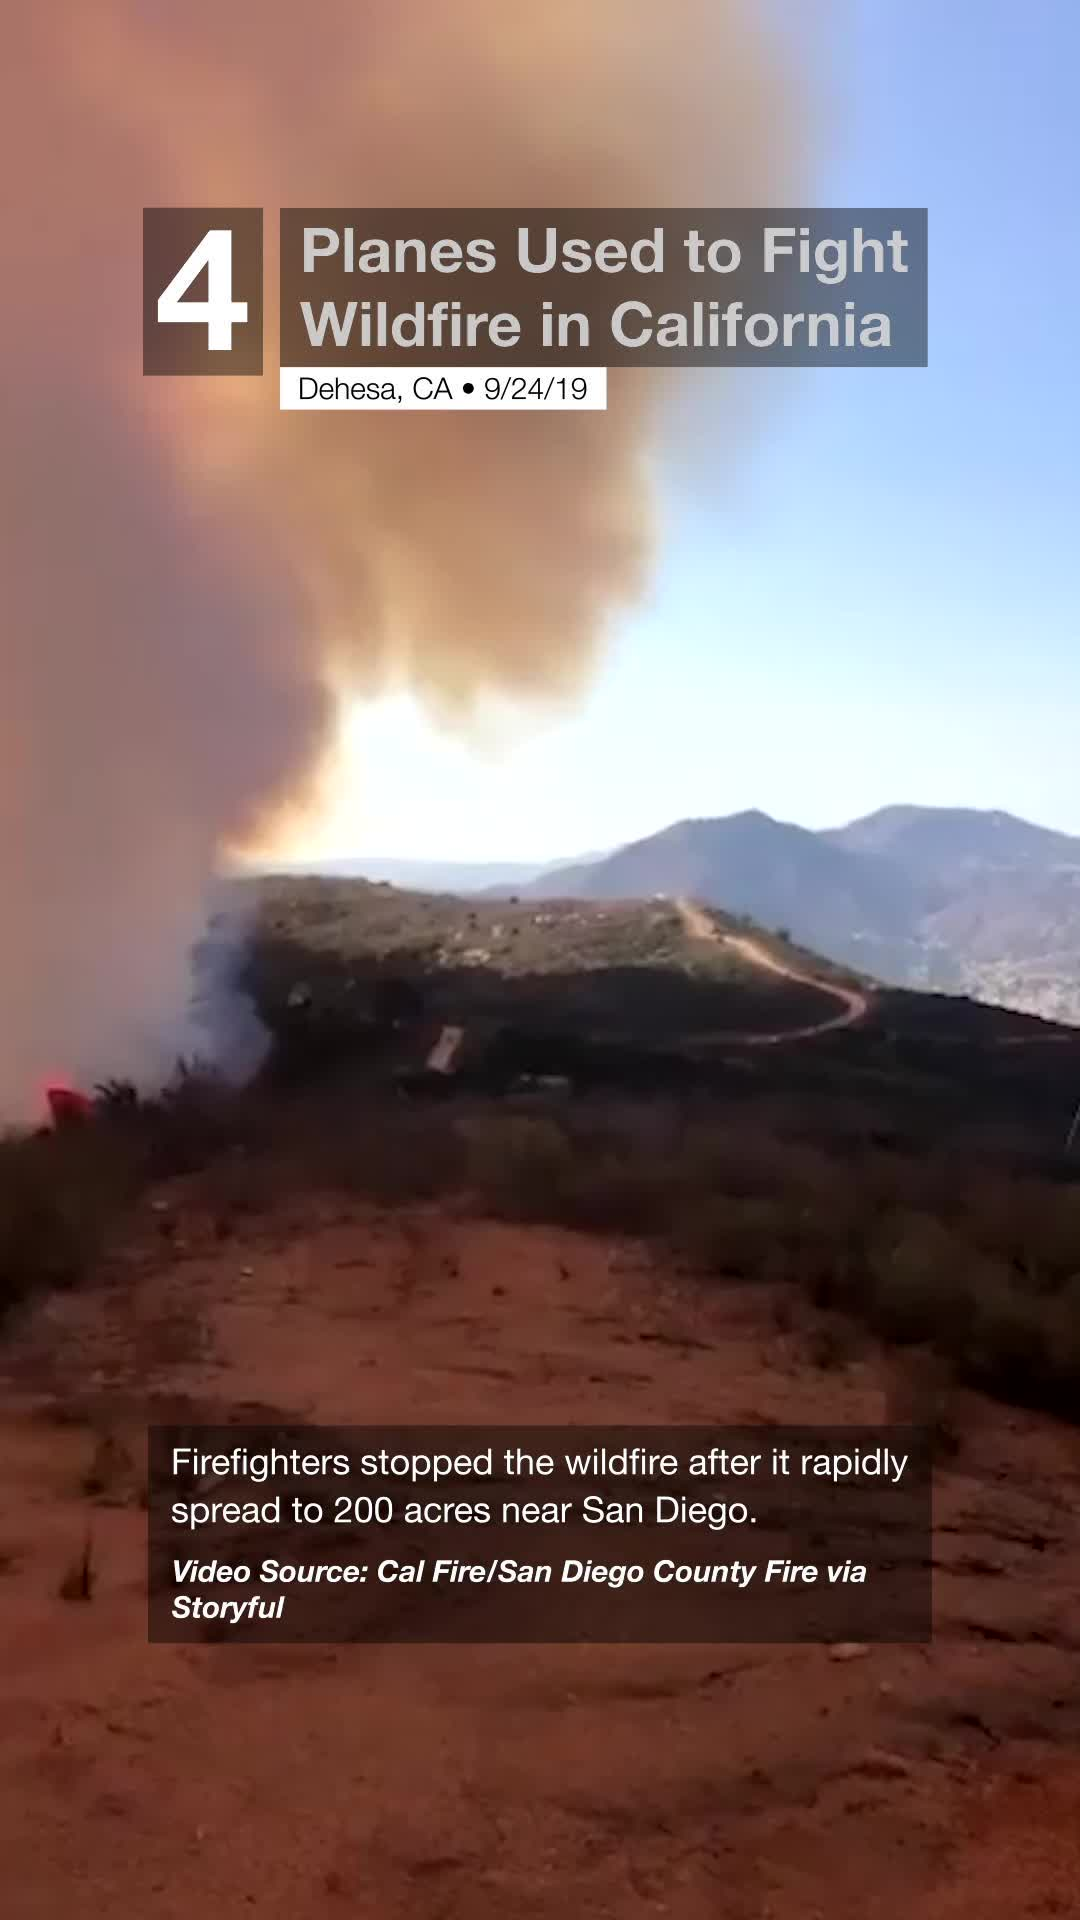 Planes Used to Fight Wildfire in California